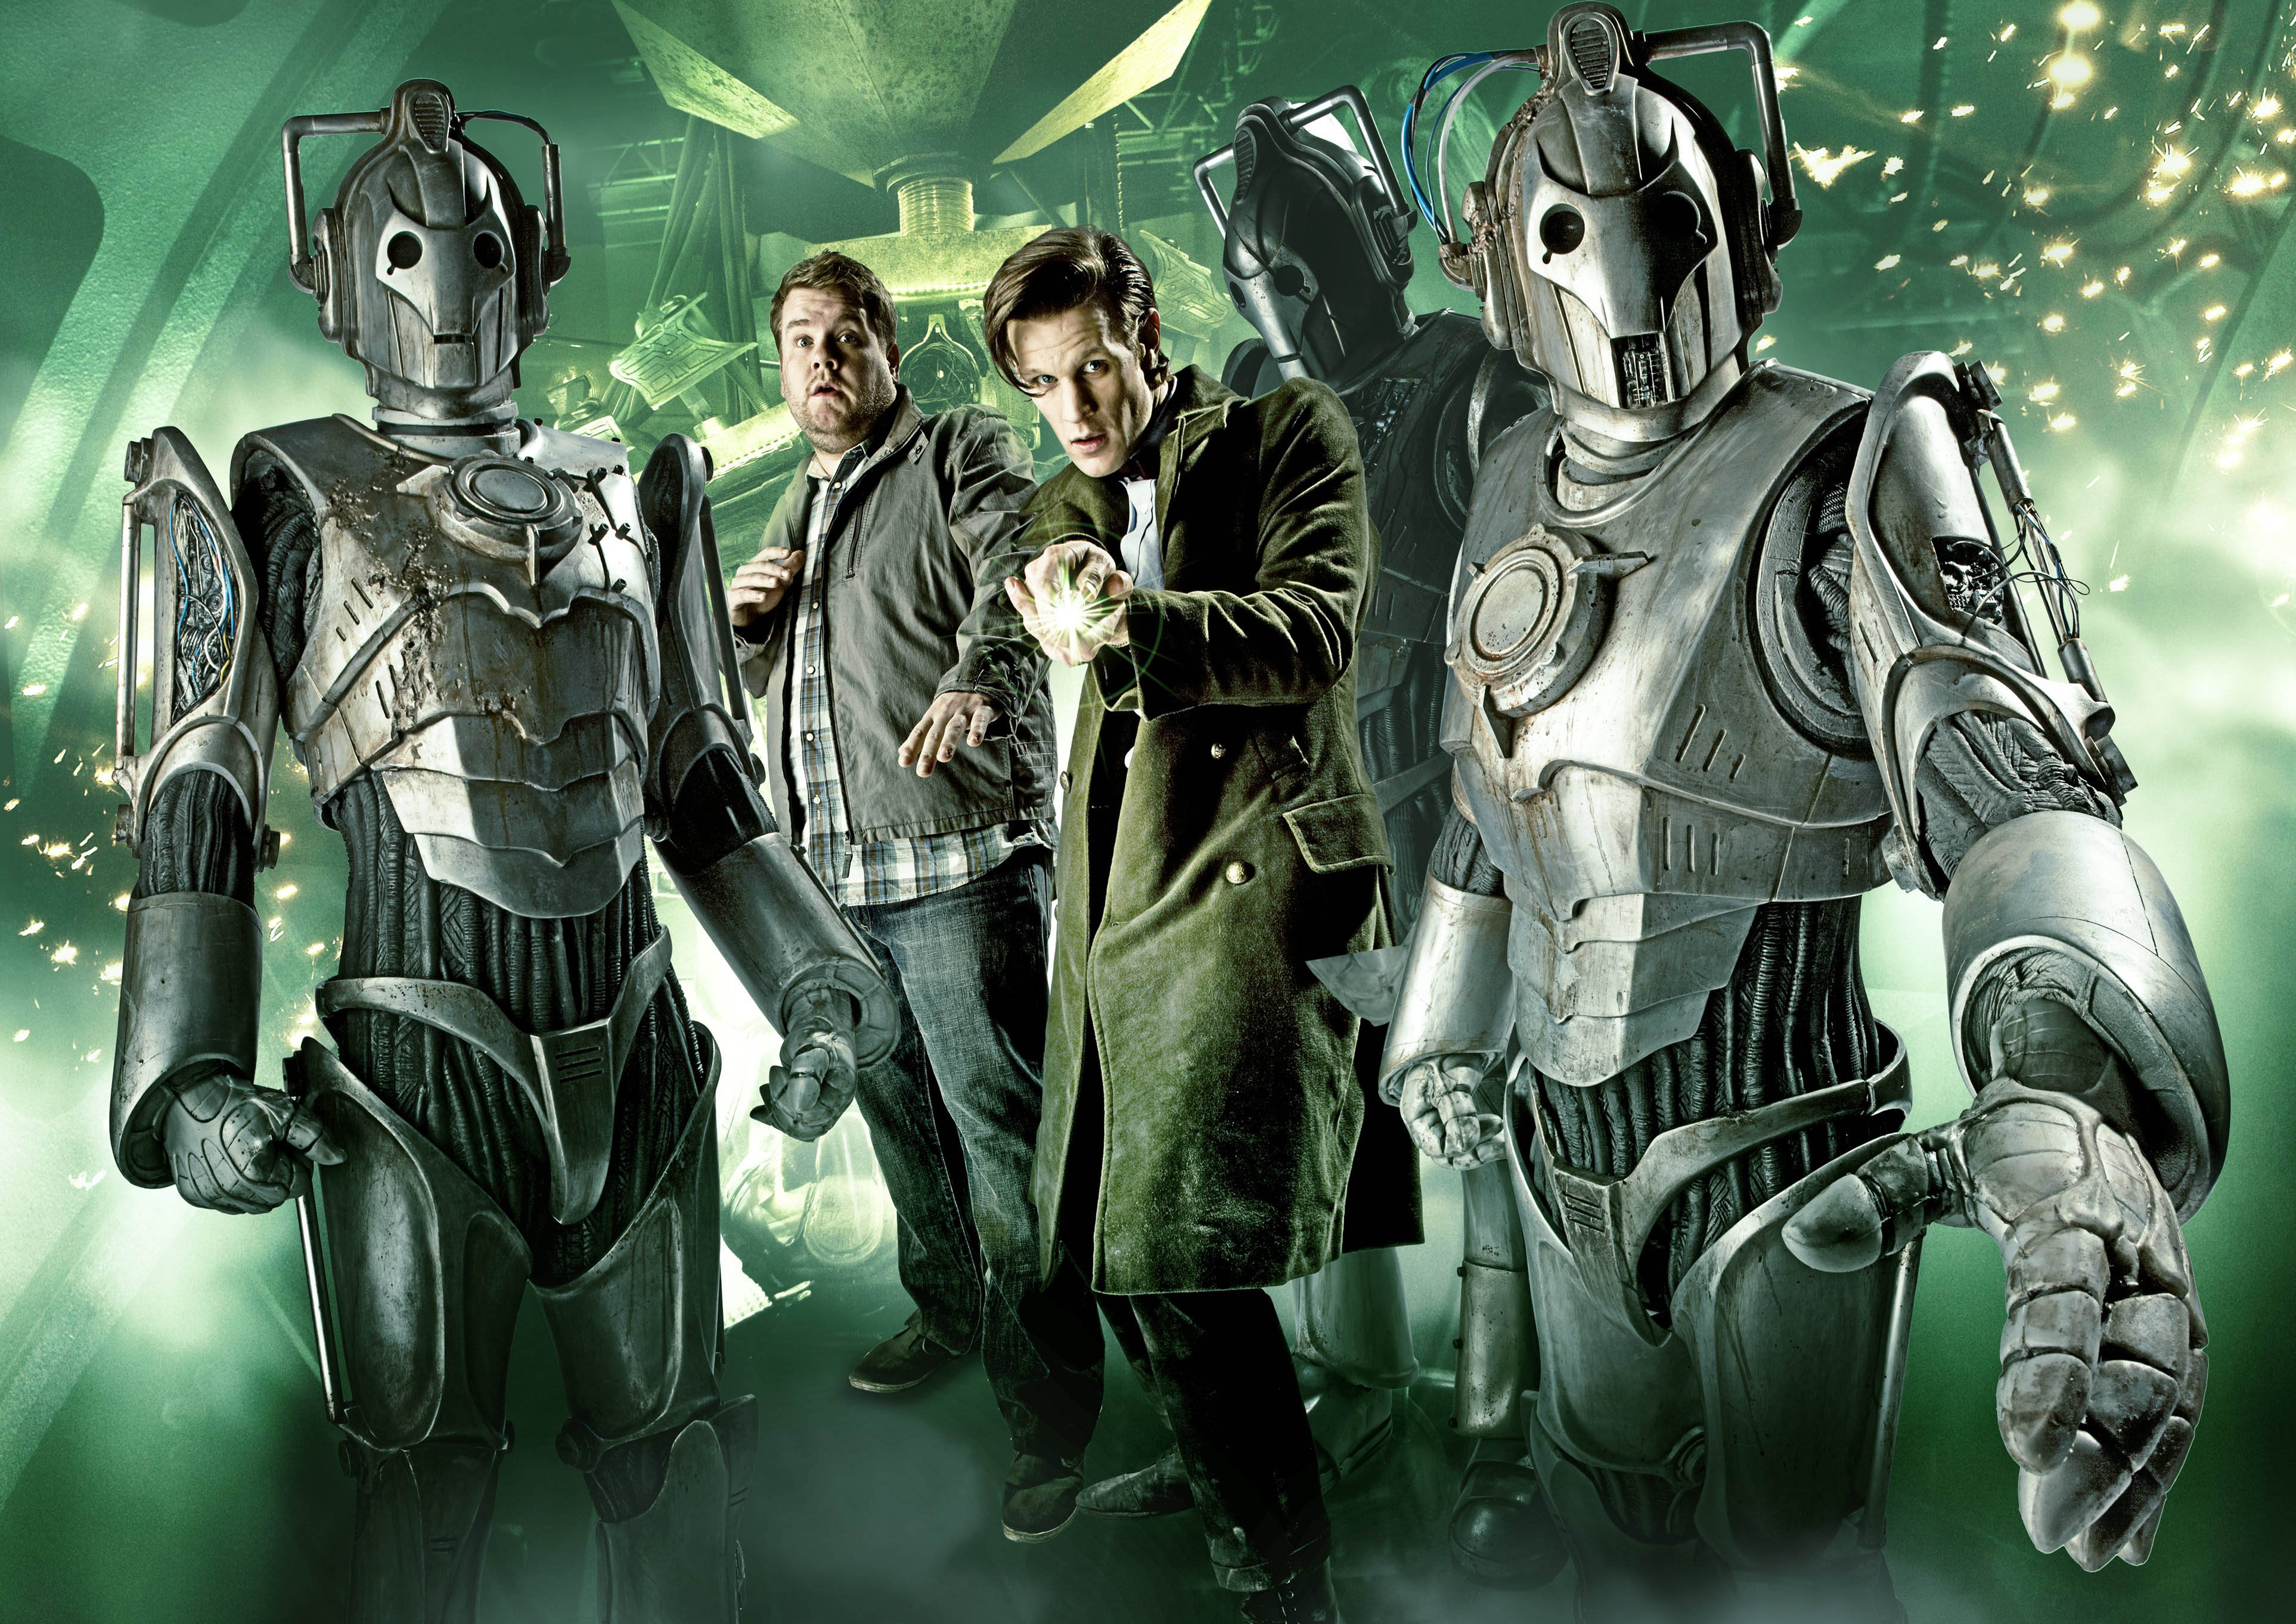 Doctor Who Tv Series 6 Story 223 Closing Time Episode 12